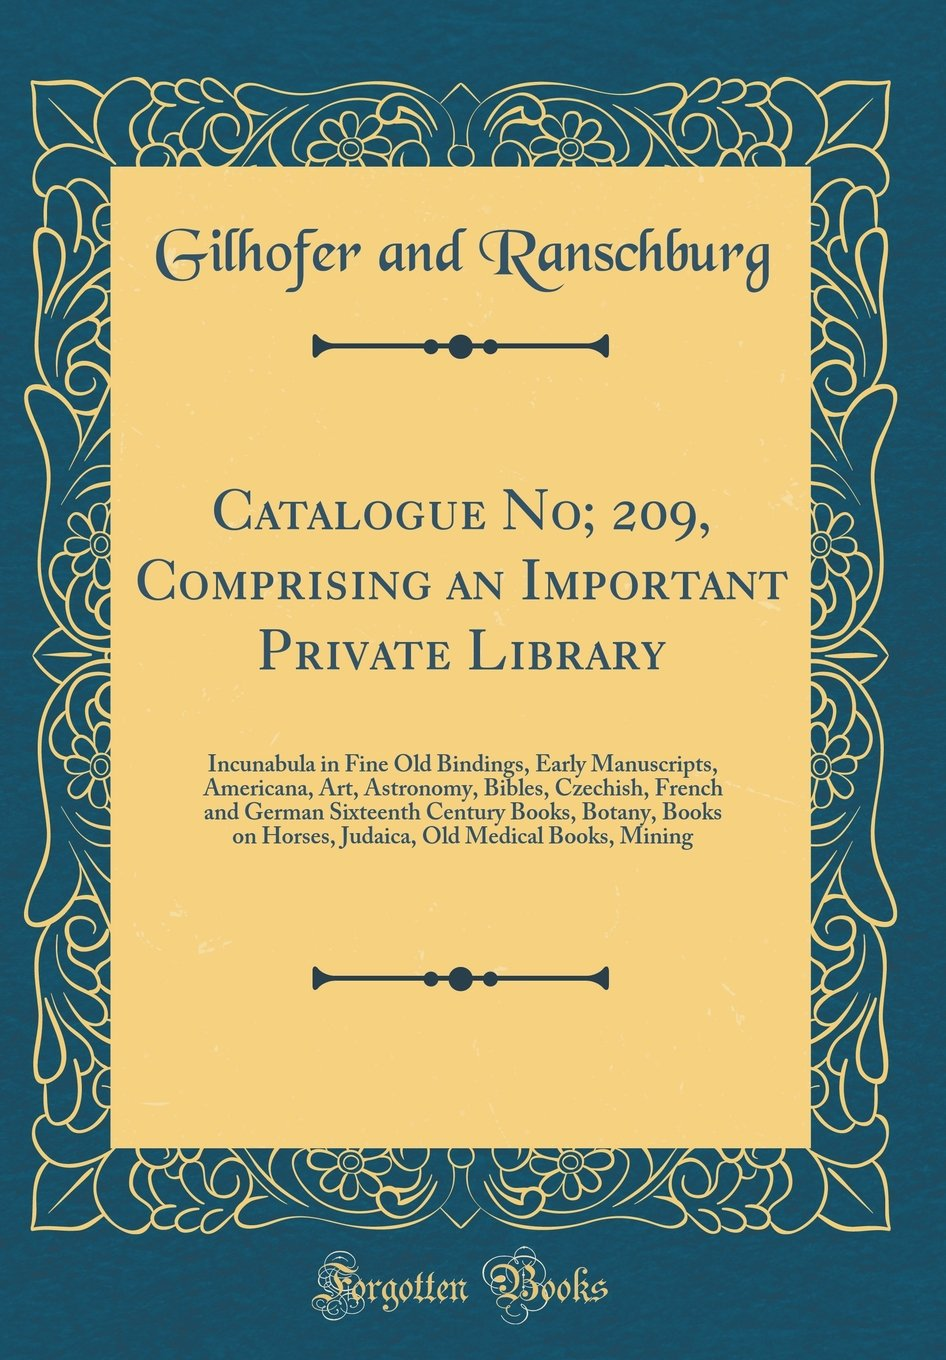 Download Catalogue No; 209, Comprising an Important Private Library: Incunabula in Fine Old Bindings, Early Manuscripts, Americana, Art, Astronomy, Bibles, ... on Horses, Judaica, Old Medical Books, Mi ebook